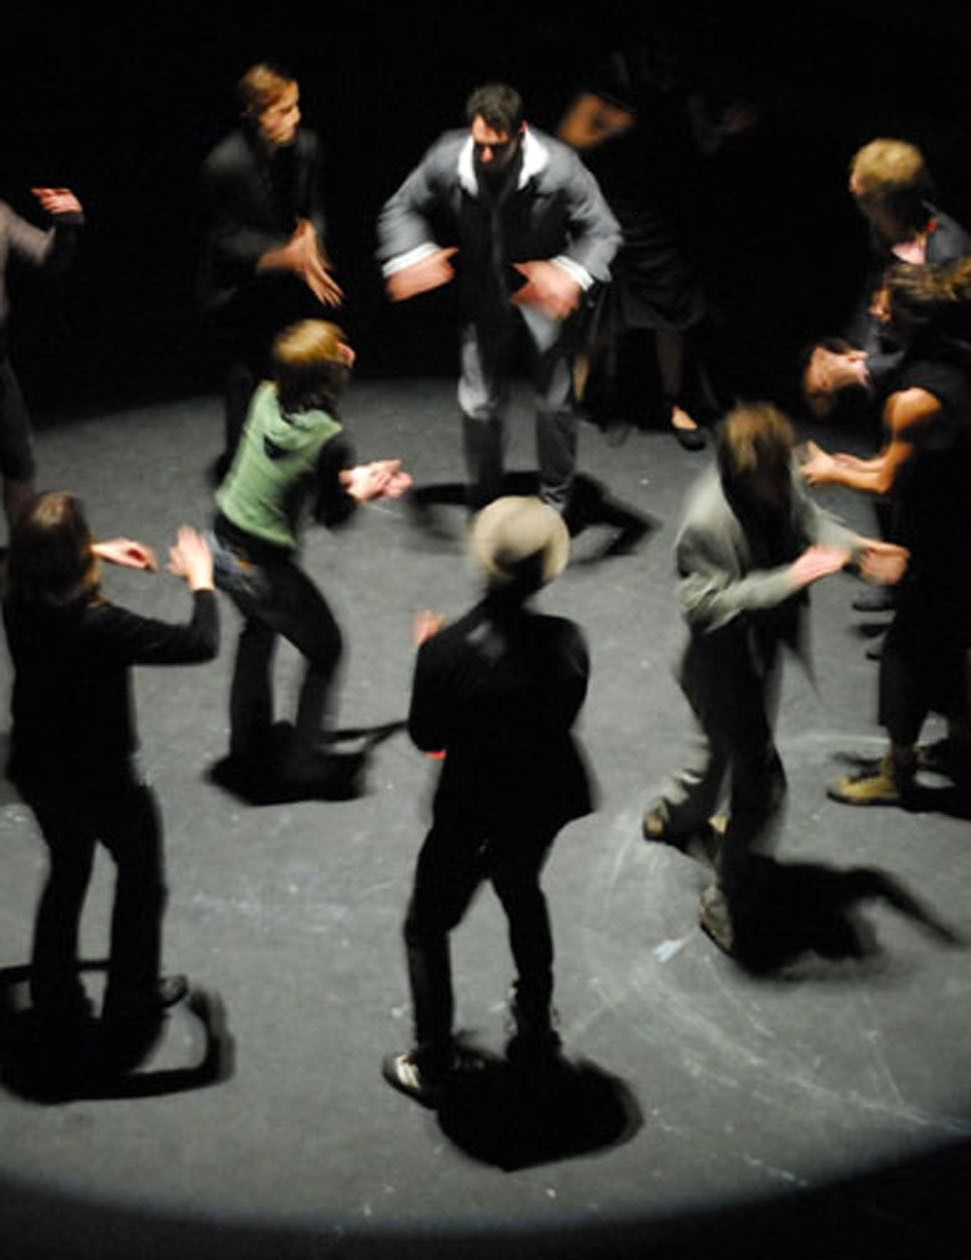 Physical body percussion - great as a warm-up tool or icebreaker to get everyone engaged! www.corporatebash.co.uk